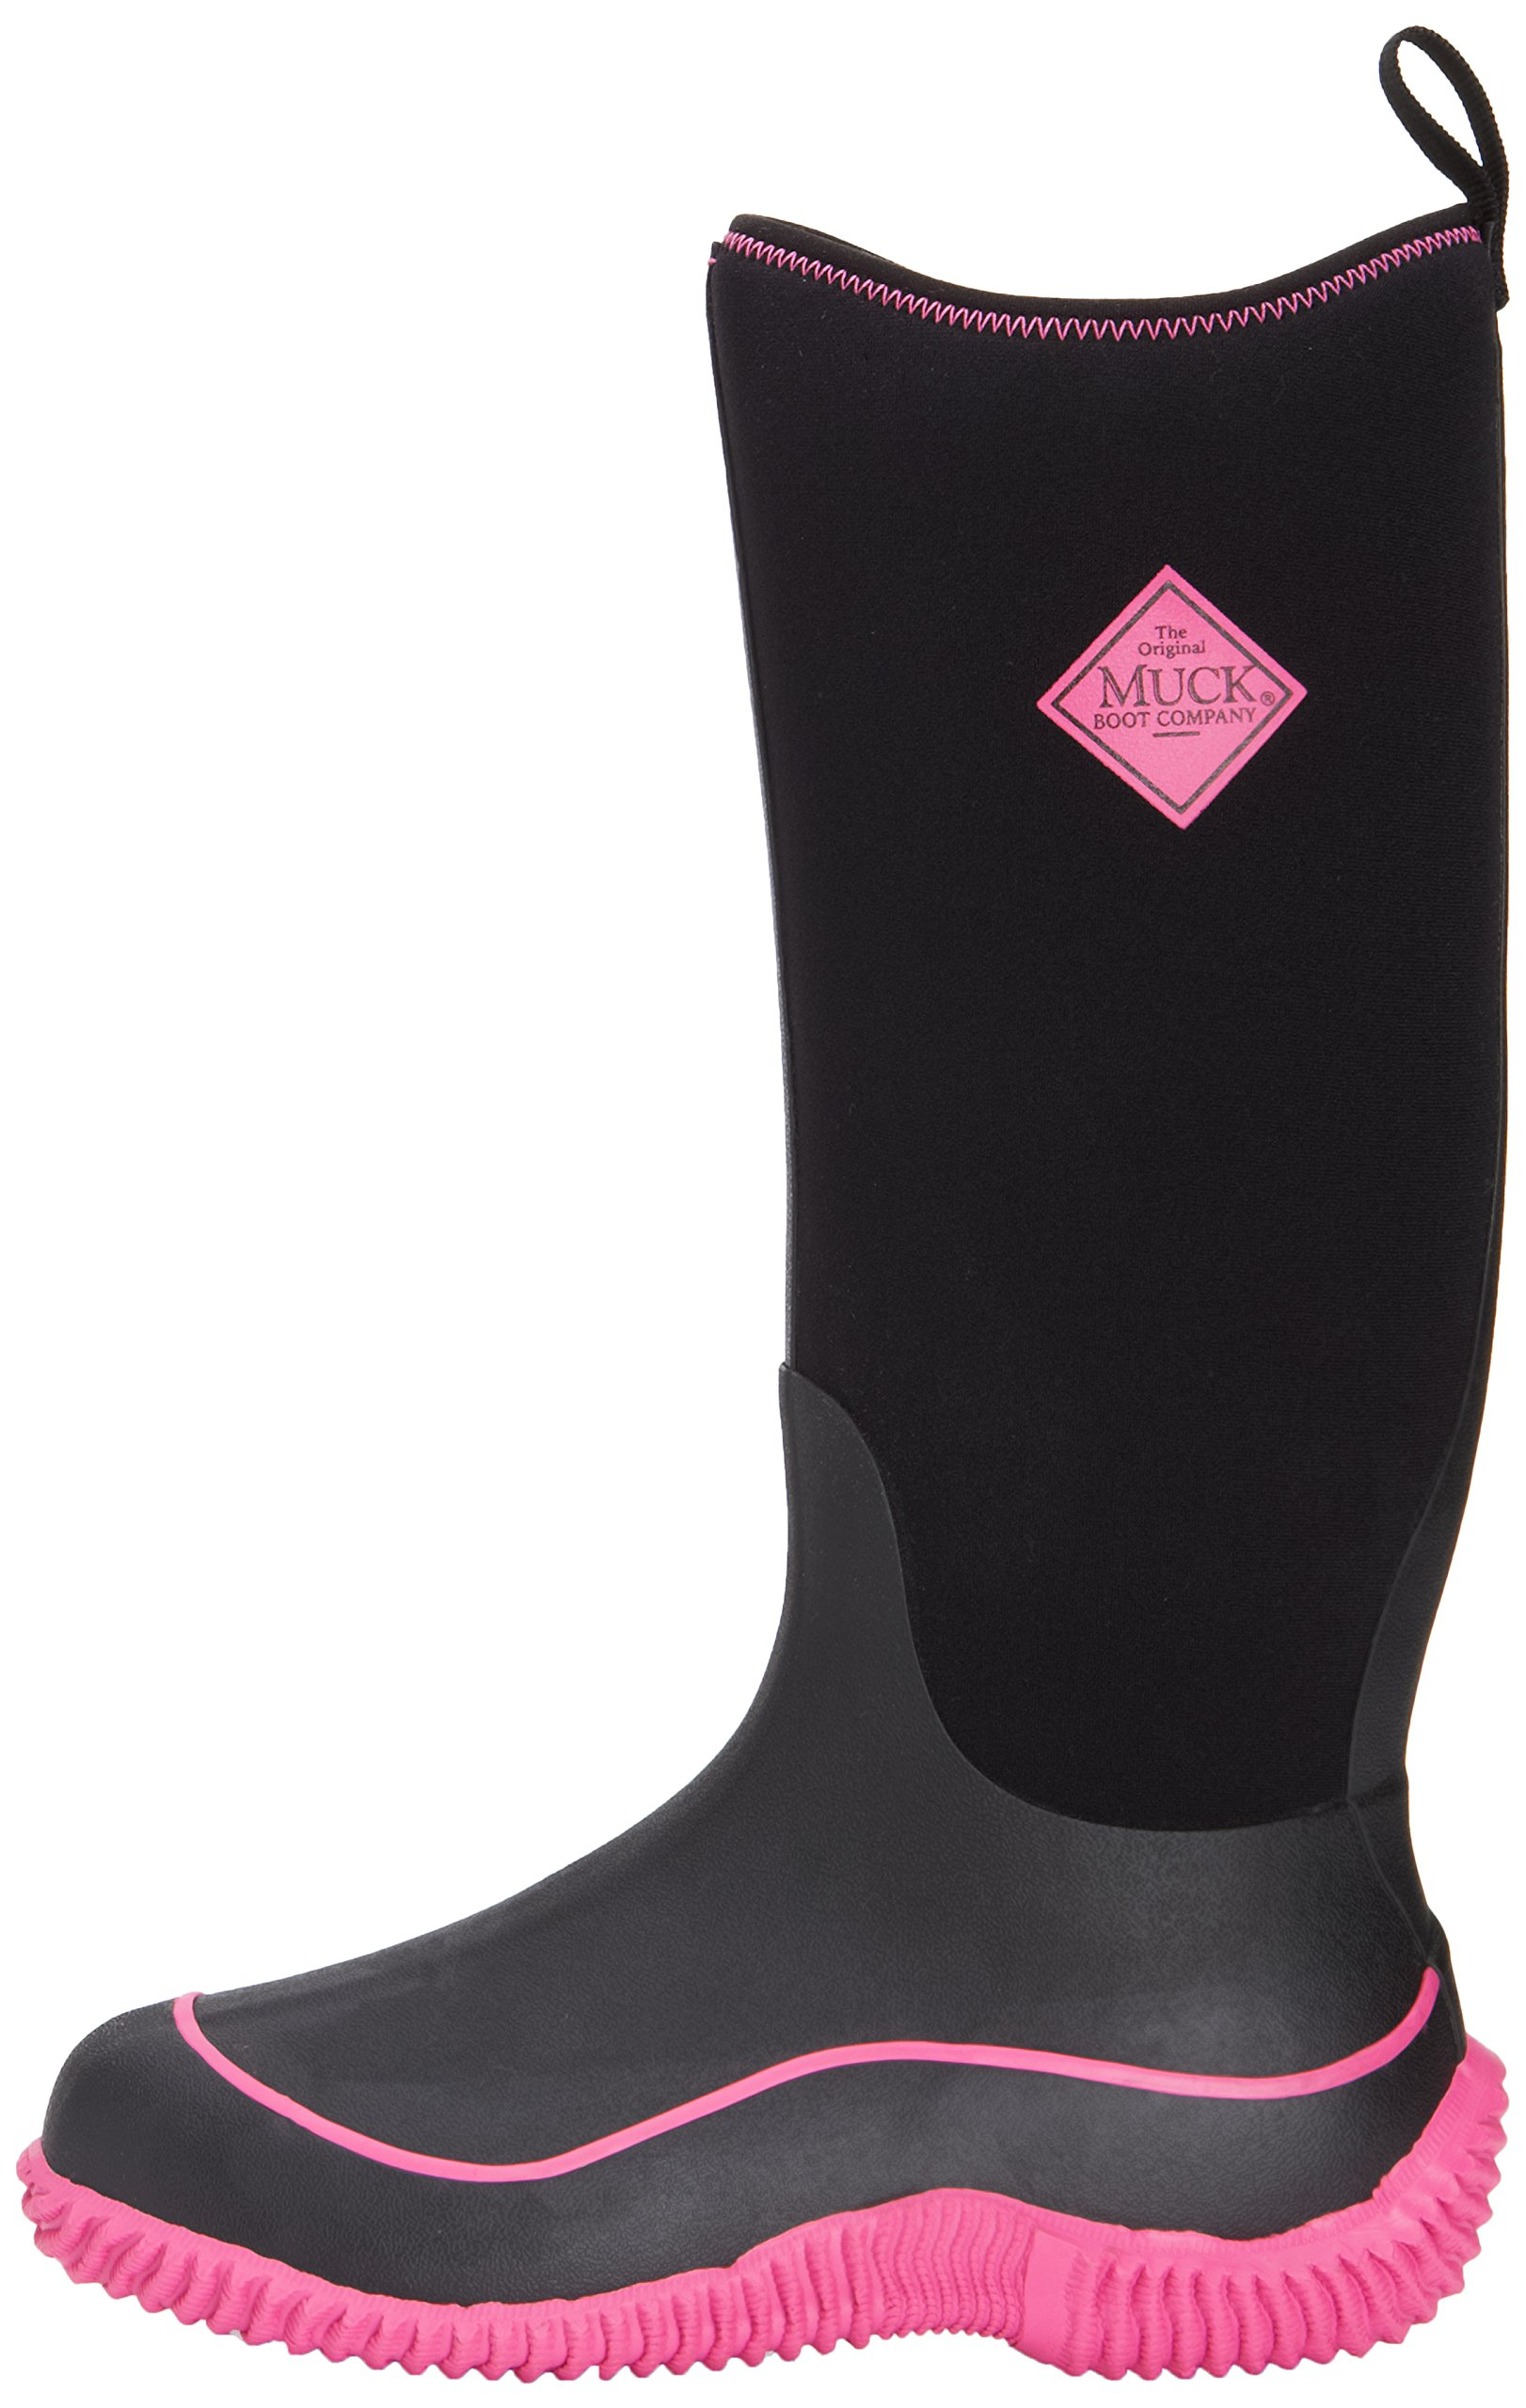 Muck Boot Women's Hale Snow Boot, Black/Hot Pink, 8 M US by Muck Boot (Image #6)